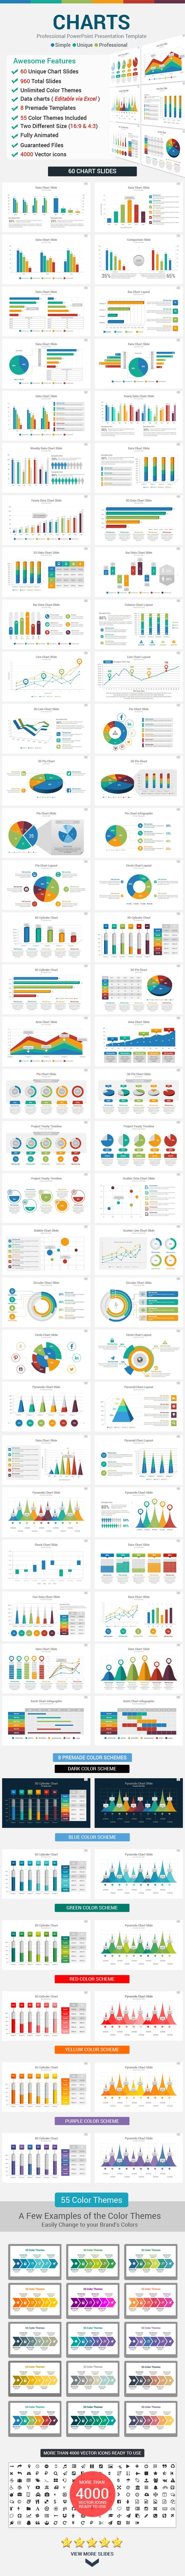 Data Charts PowerPoint Presentation Template — Powerpoint PPTX #stats #creative • Available here → https://graphicriver.net/item/data-charts-powerpoint-presentation-template/12522804?ref=pxcr